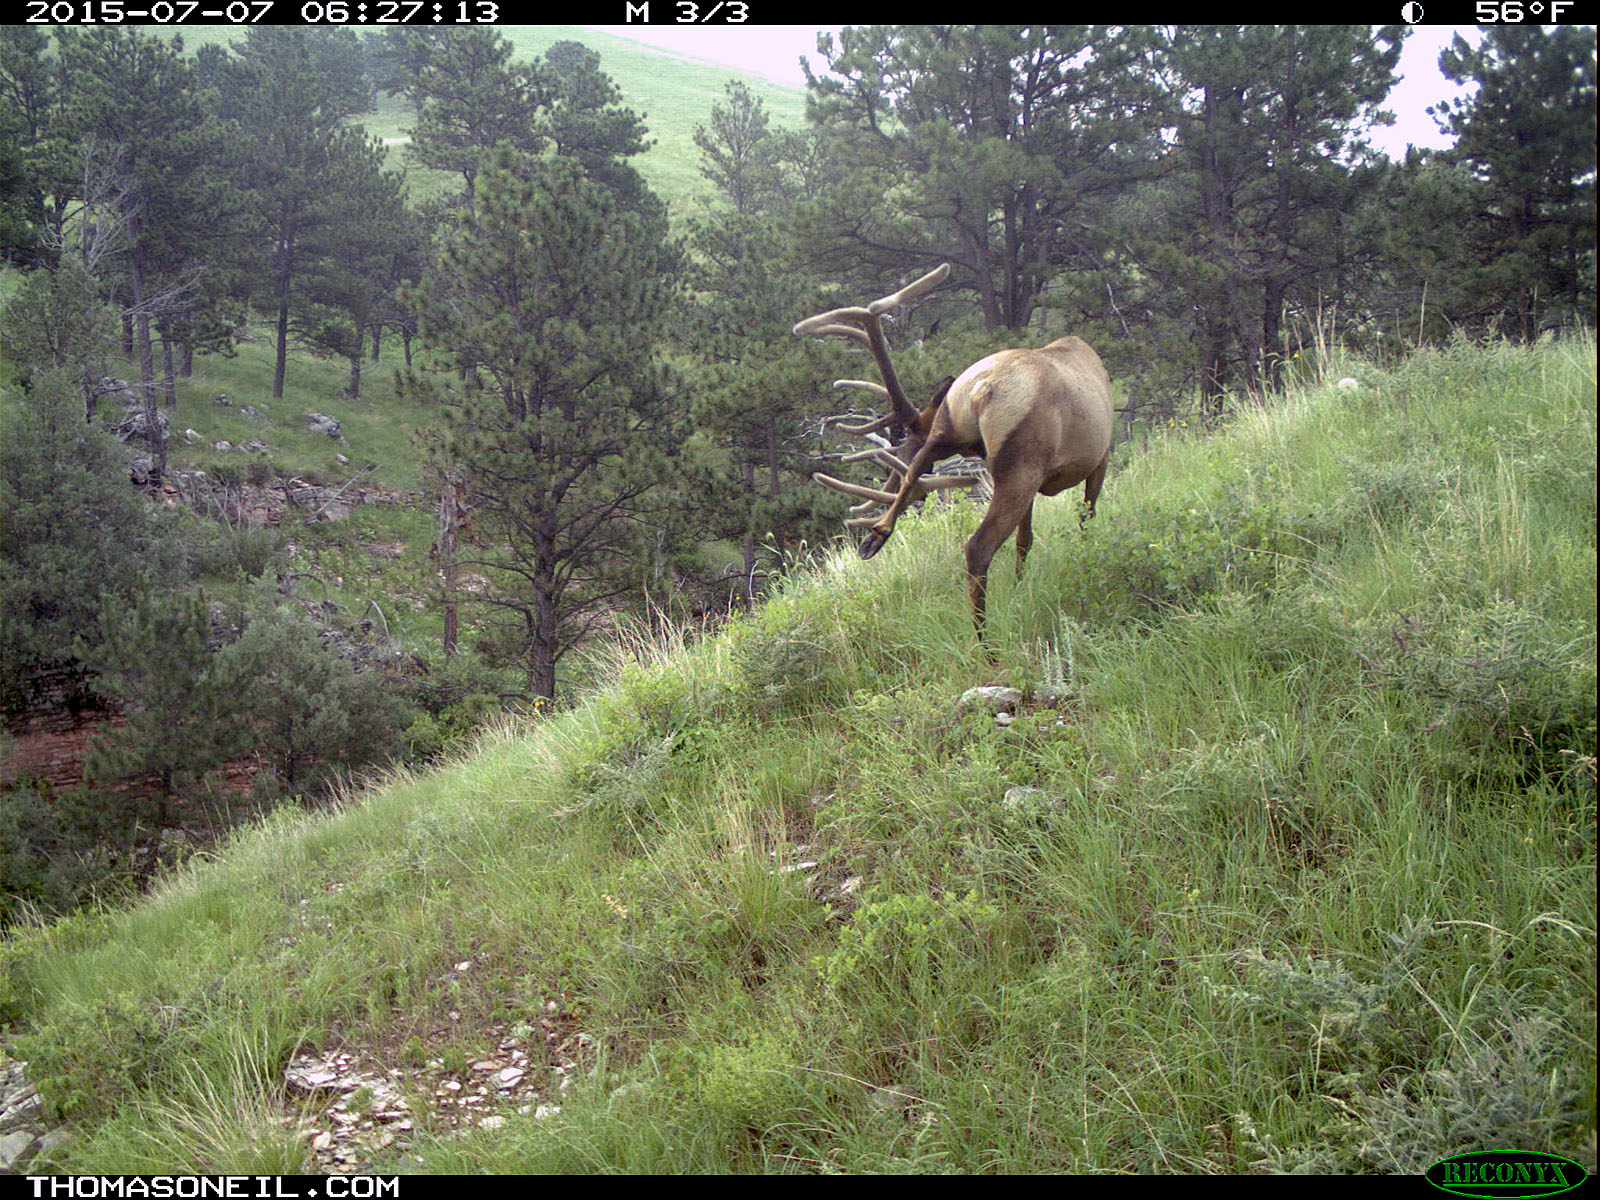 Elk scratching sequence on trailcam, 4 of 7, Wind Cave National Park, July 2015,